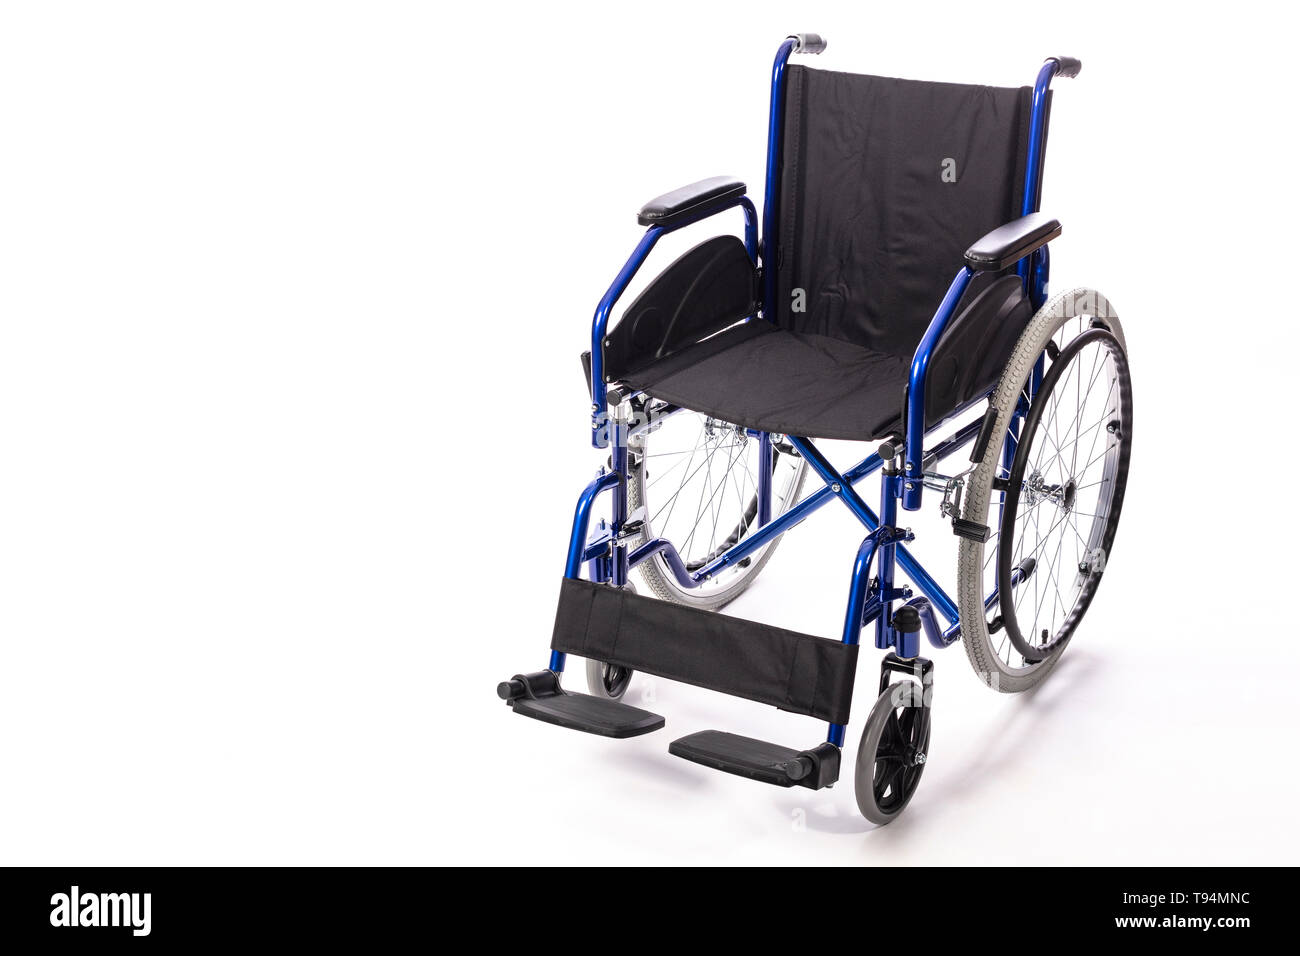 wheelchair for the disabled on a white background front view - Stock Image